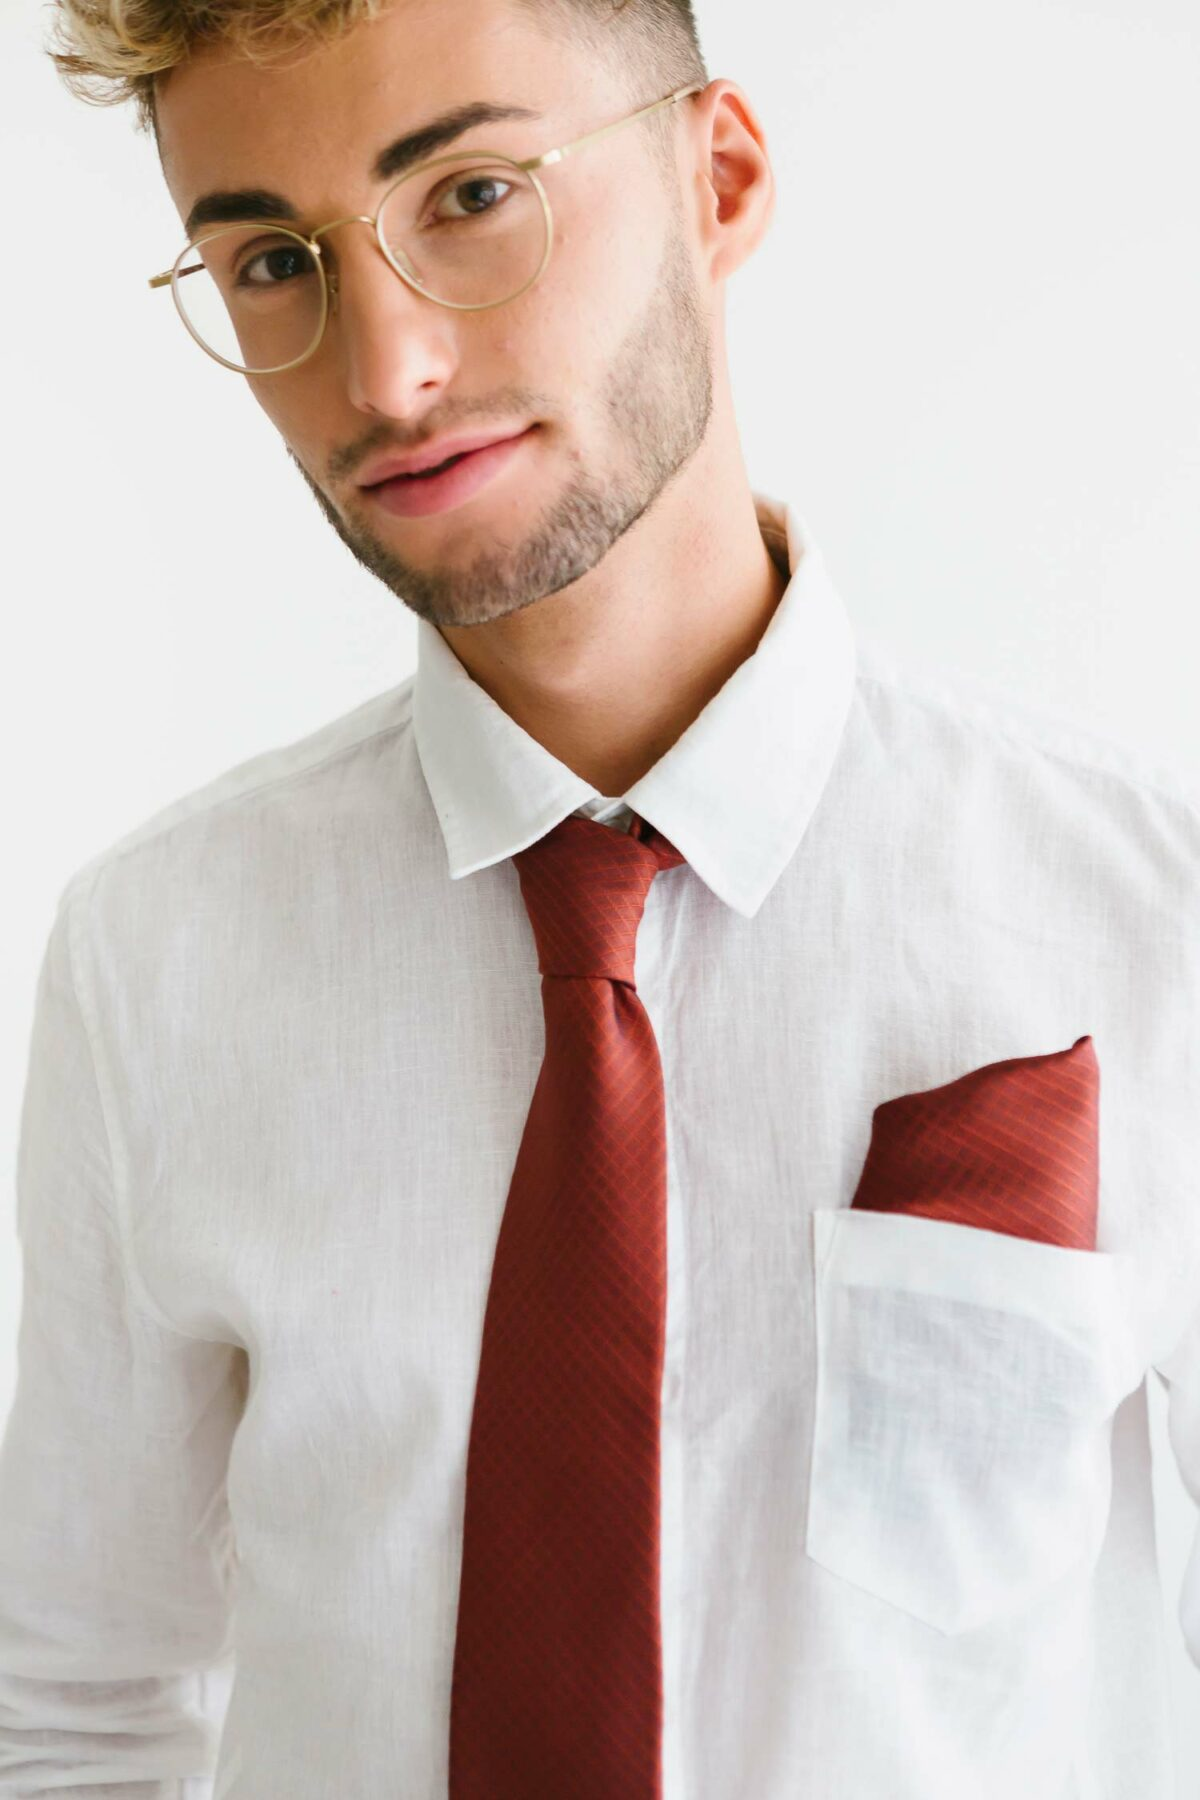 man with a rusty red tie and a pocket square